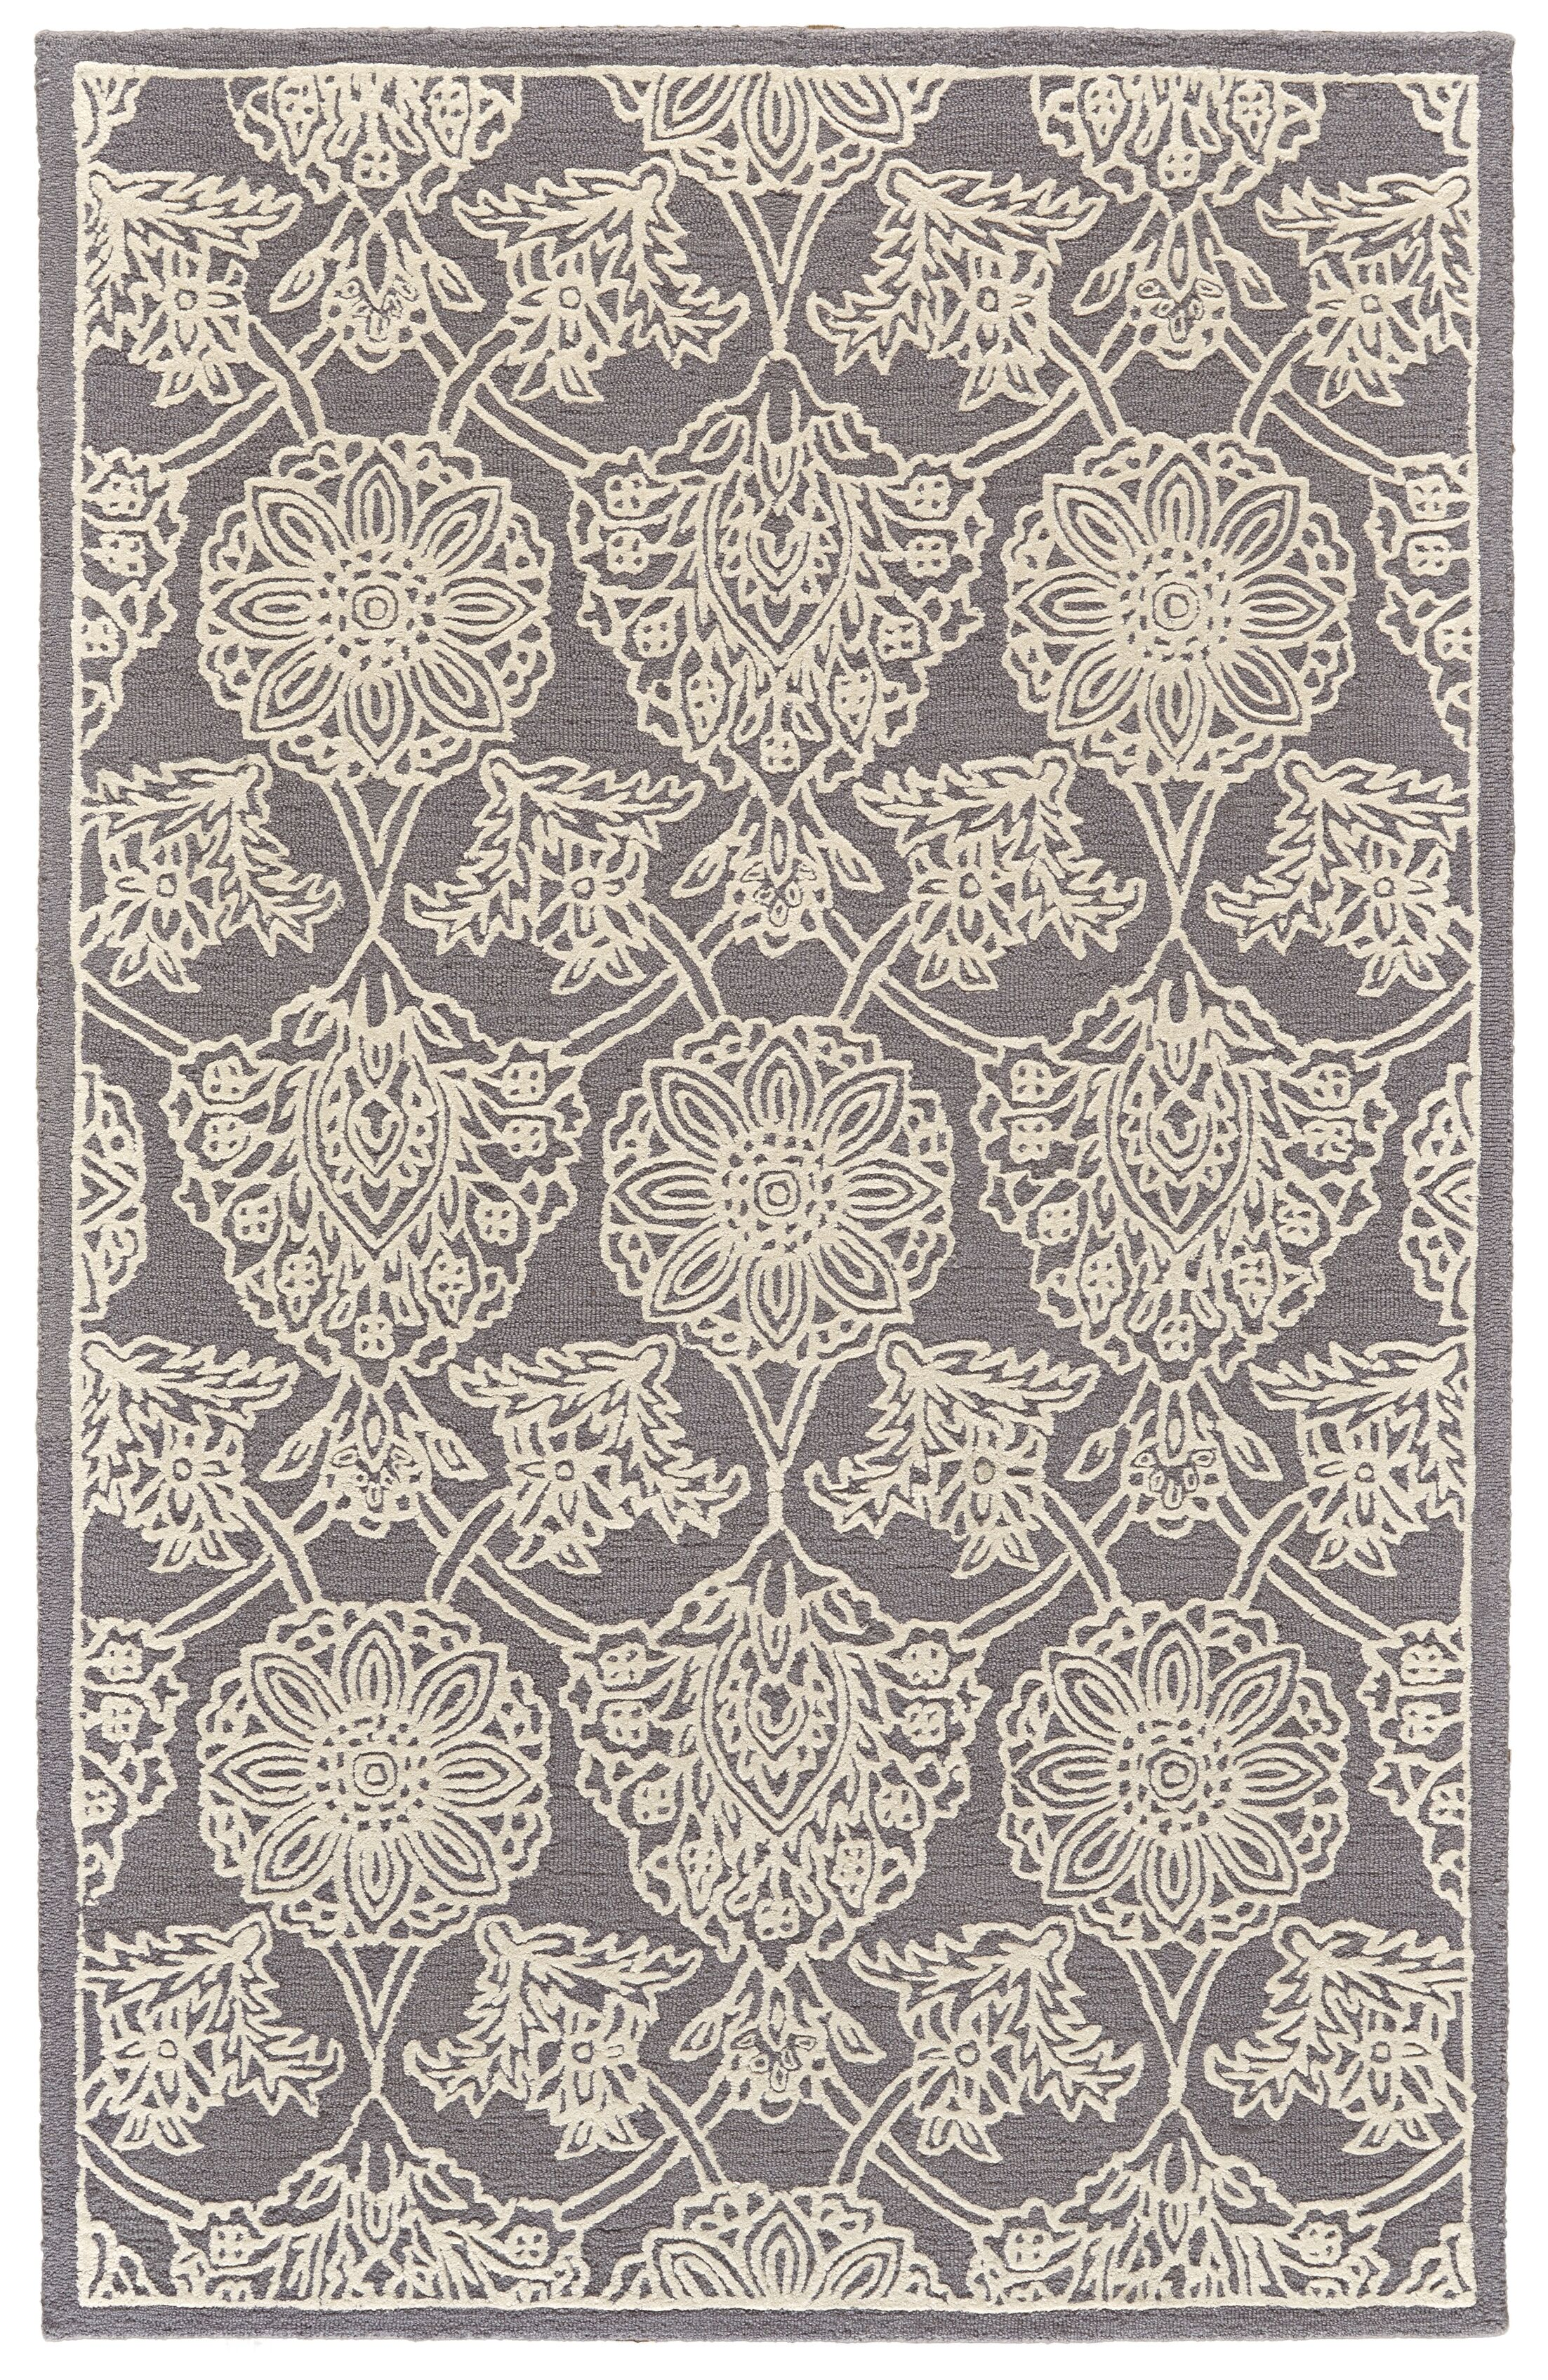 Griego Hand-Tufted Wool Dark Gray/Ivory Area Rug Rug Size: Rectangle 9'6